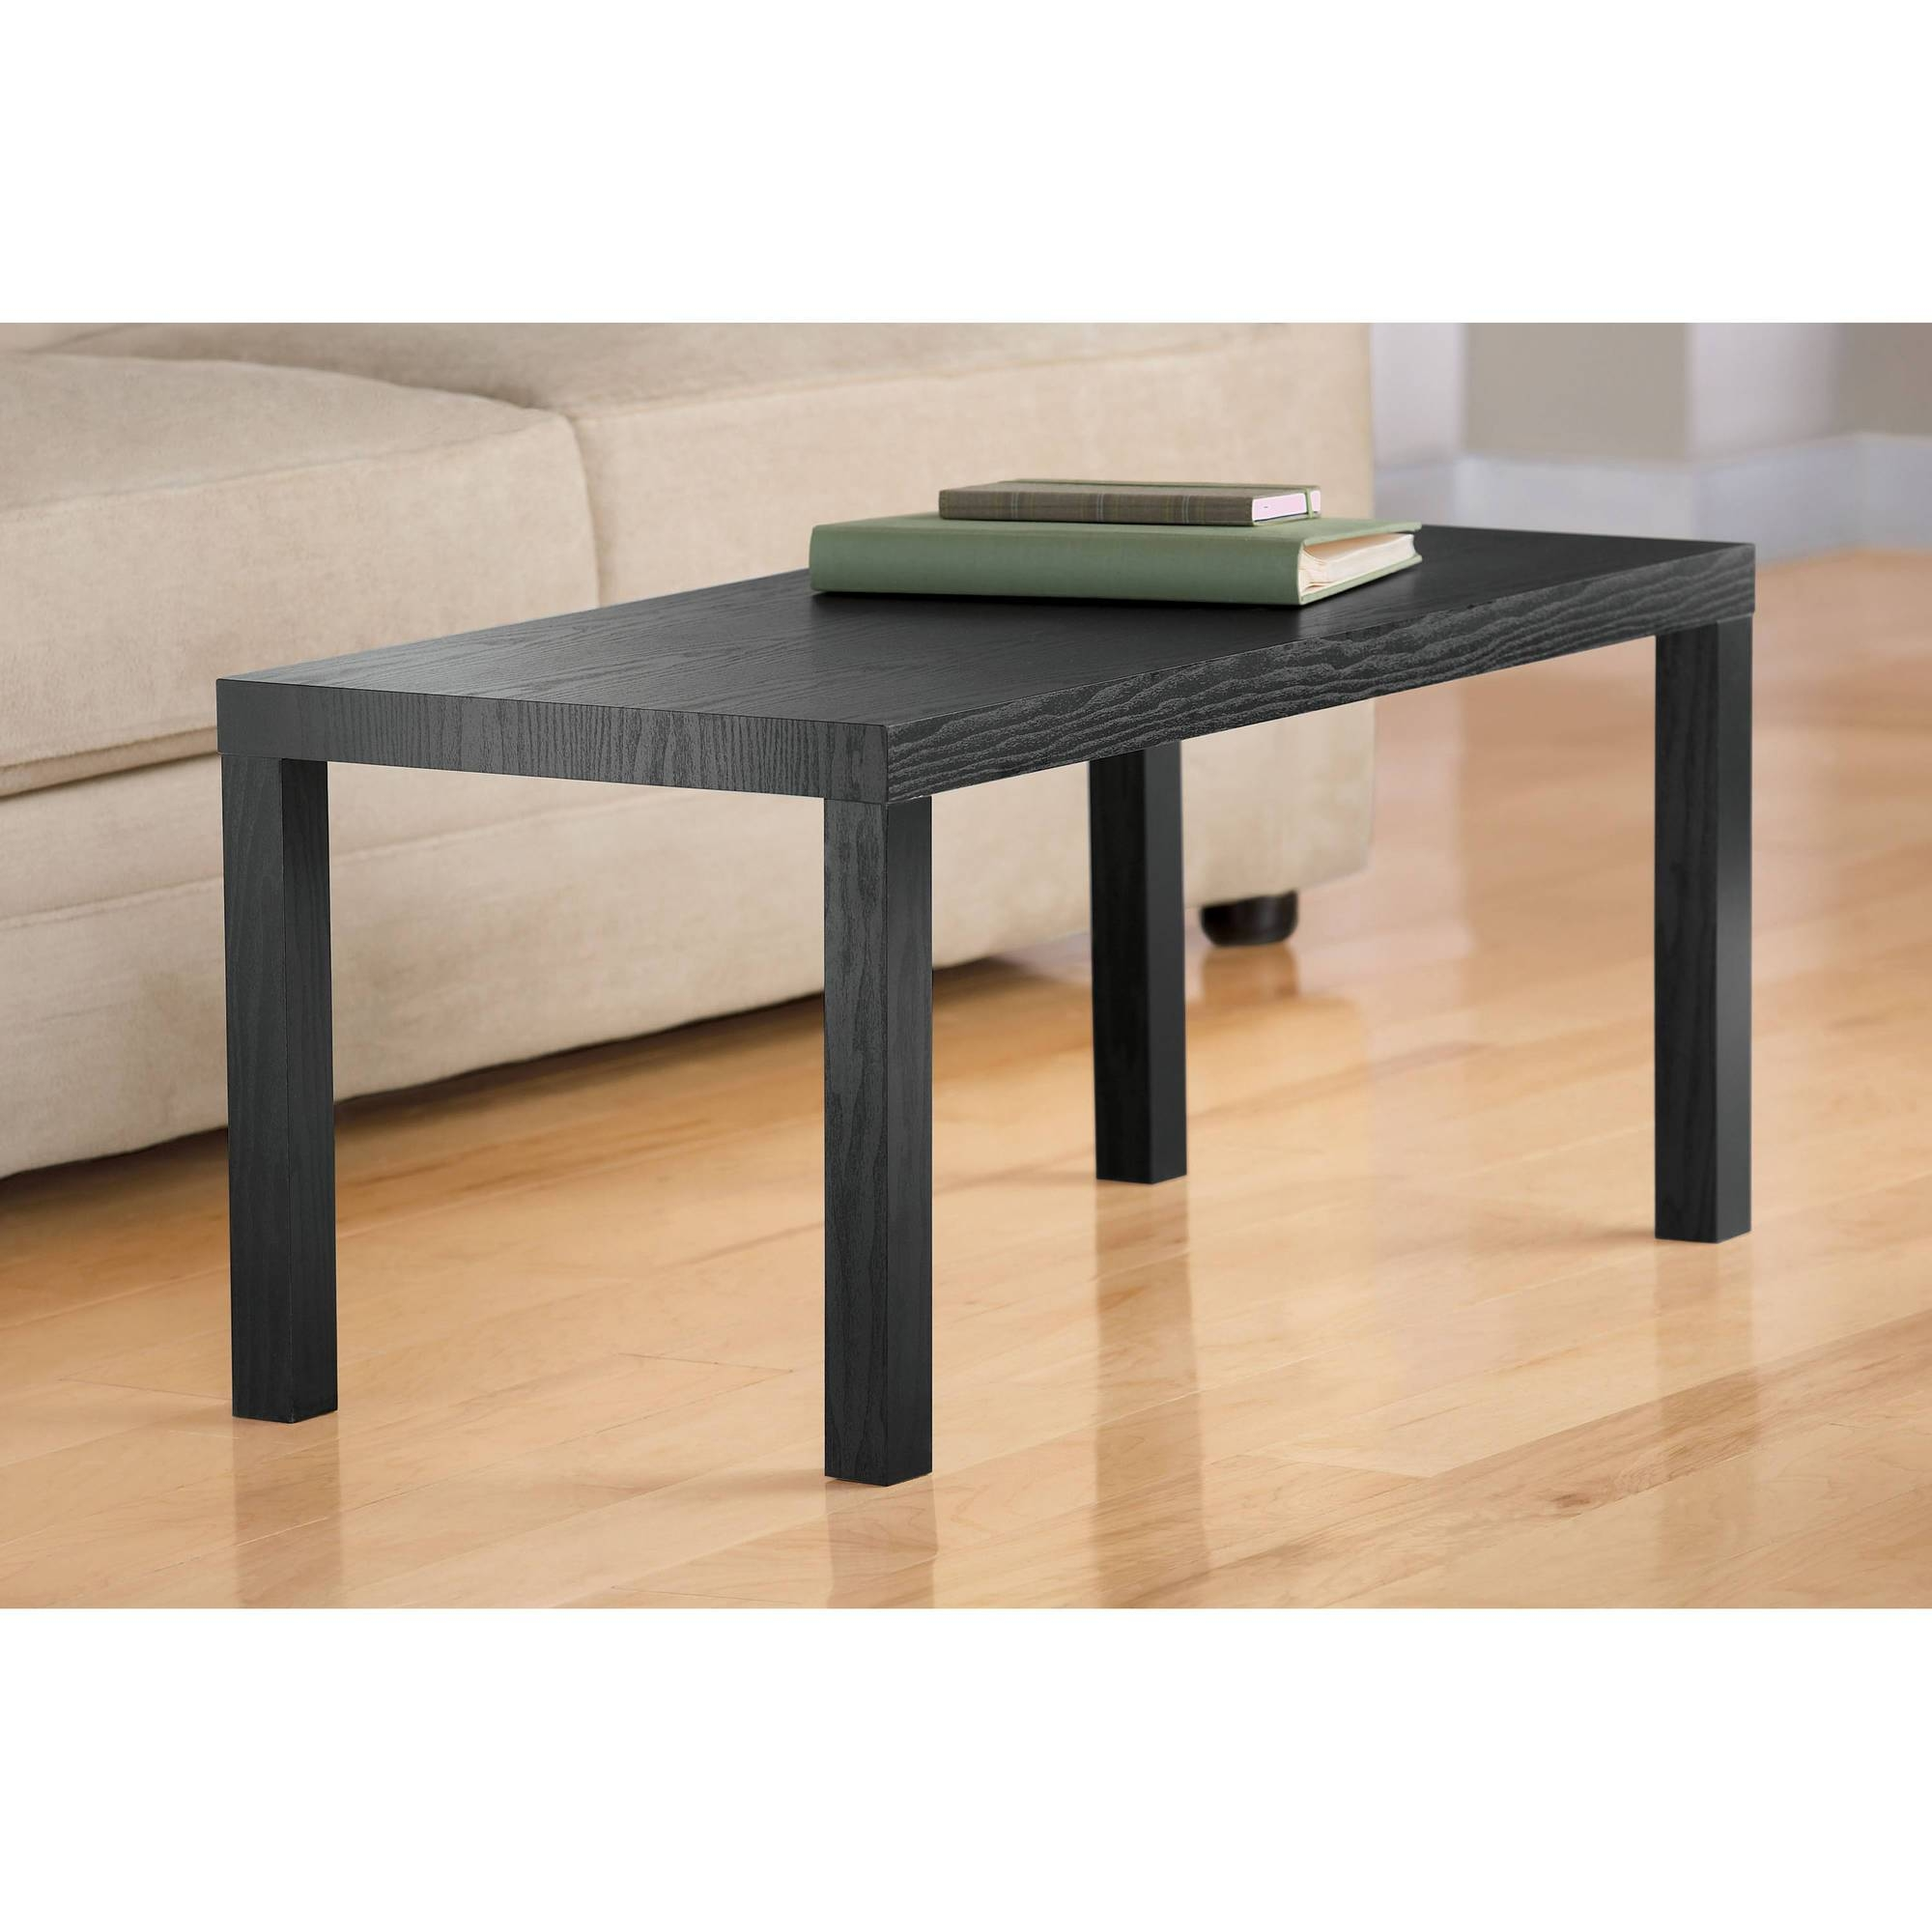 Coffee Tables - Walmart for Cheap Oak Coffee Tables (Image 10 of 30)